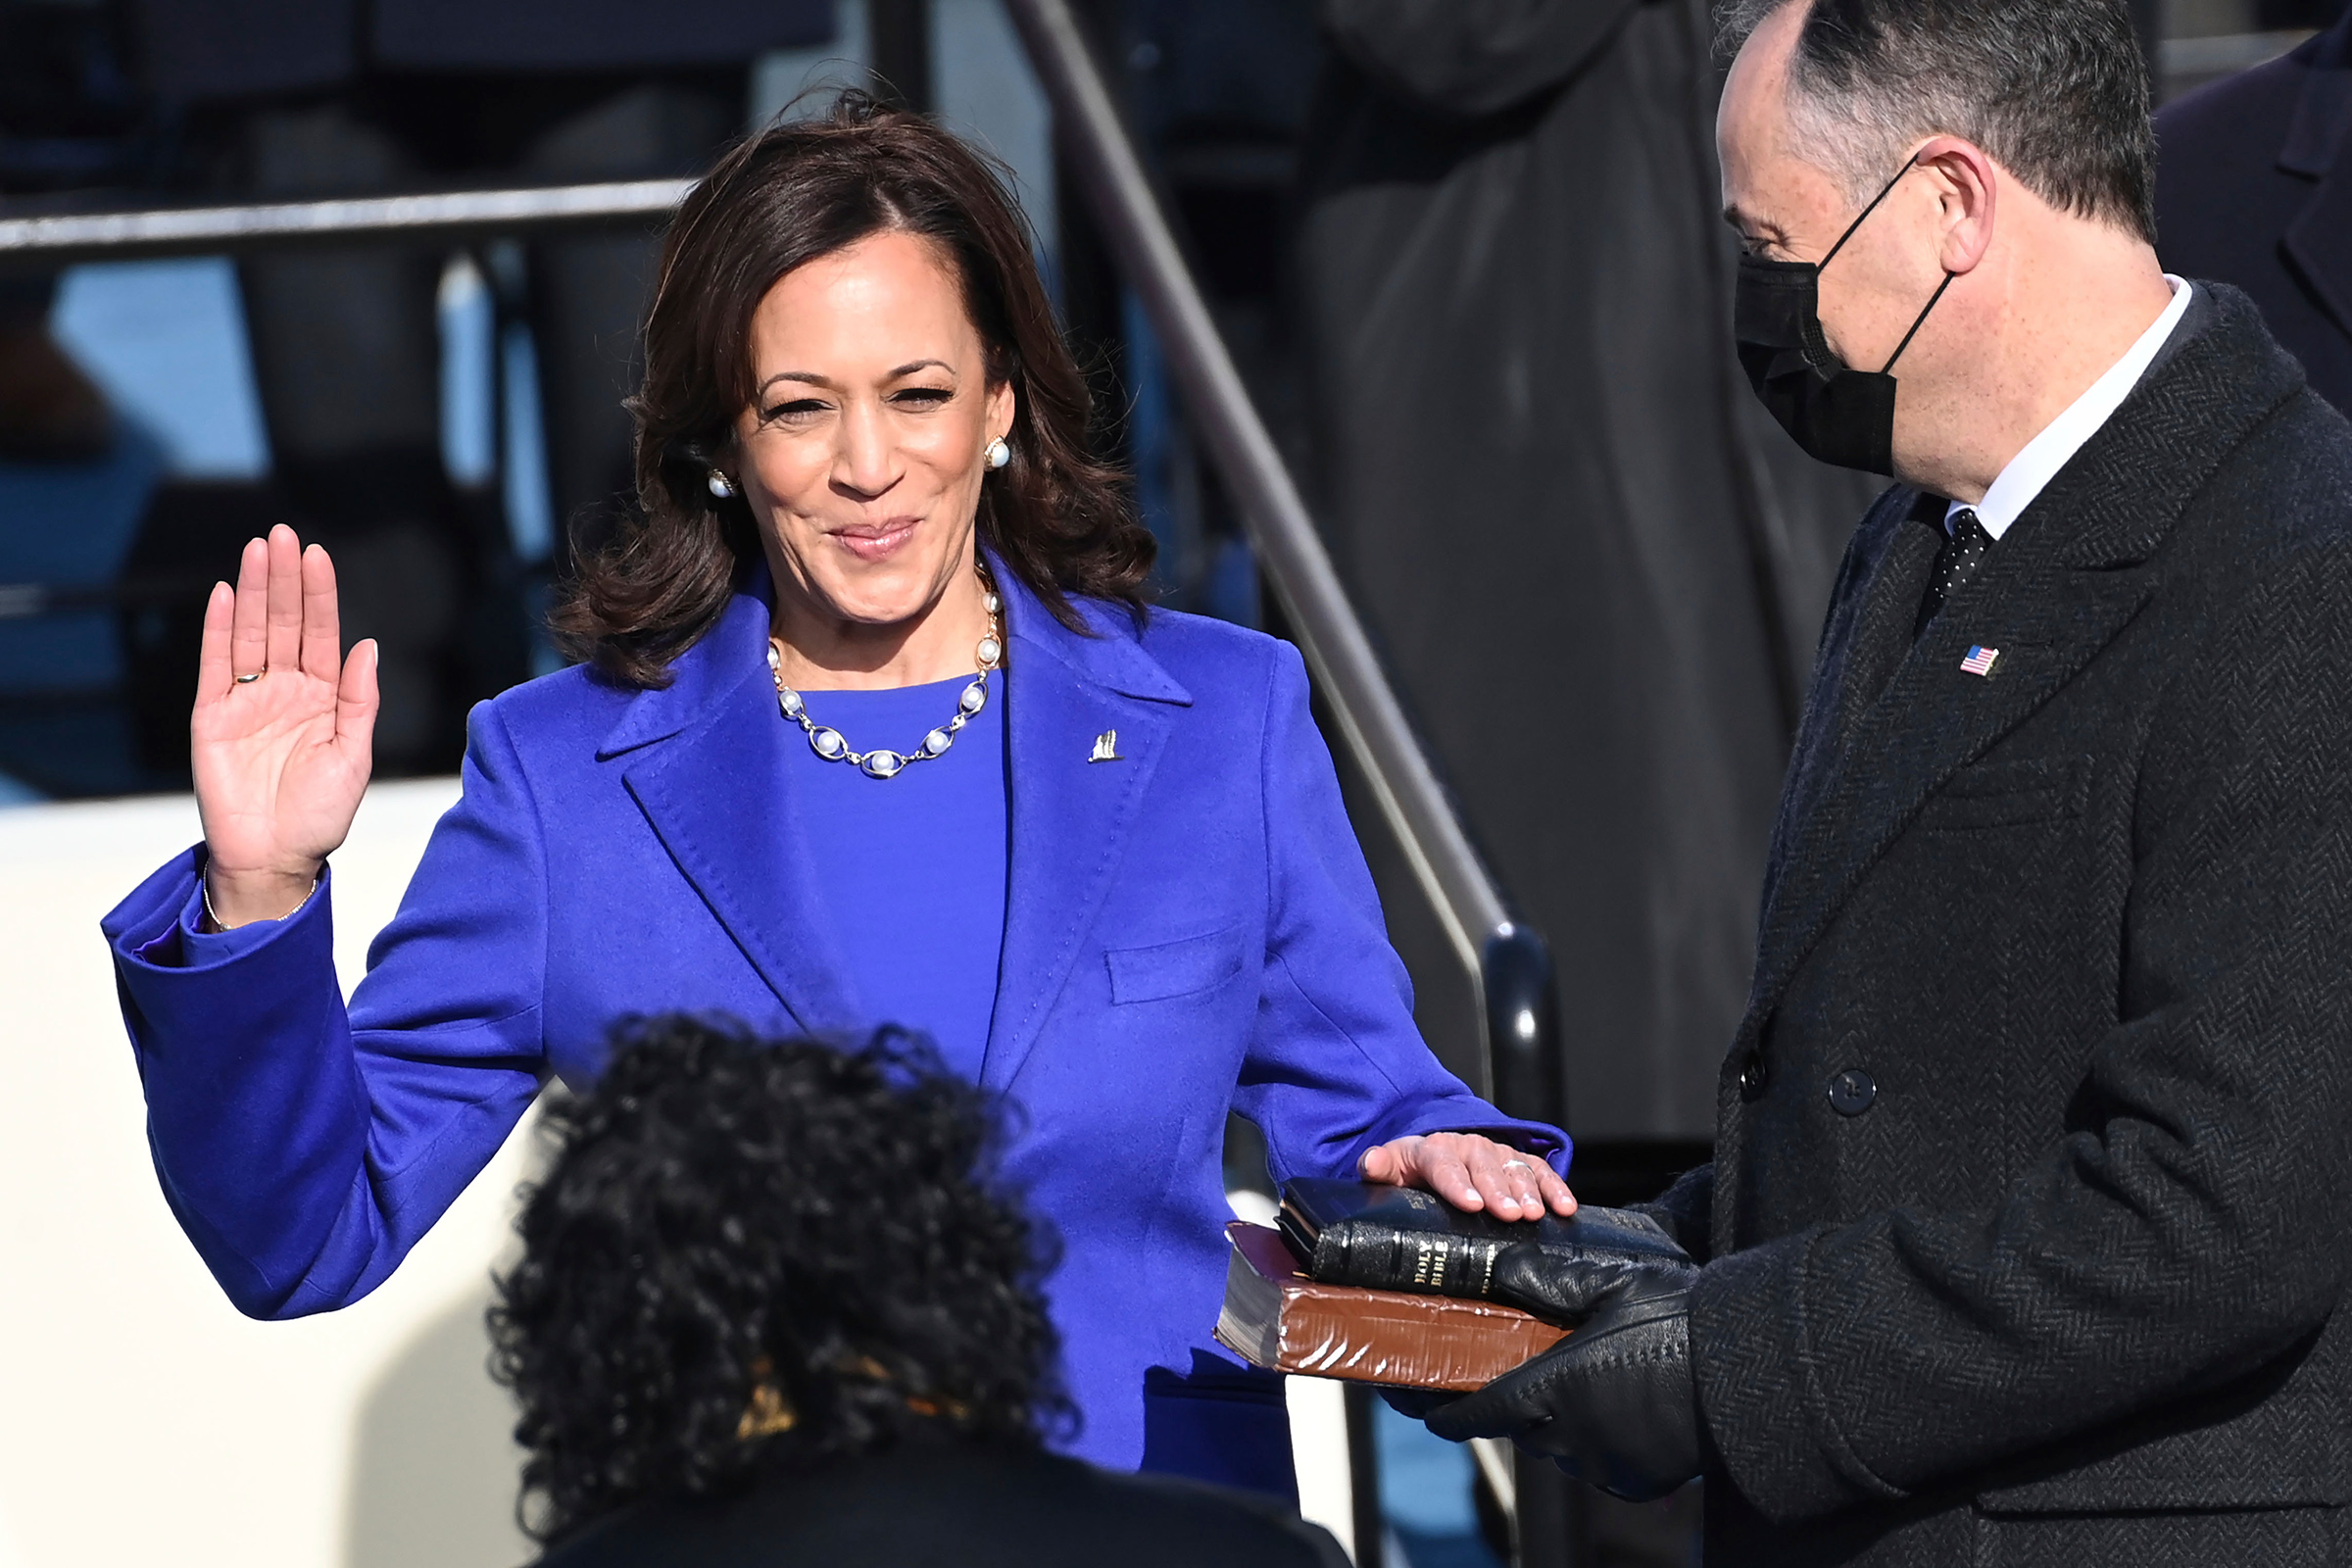 Kamala Harris is sworn in as vice president by Supreme Court Justice Sonia Sotomayor as her husband Doug Emhoff holds the Bible.